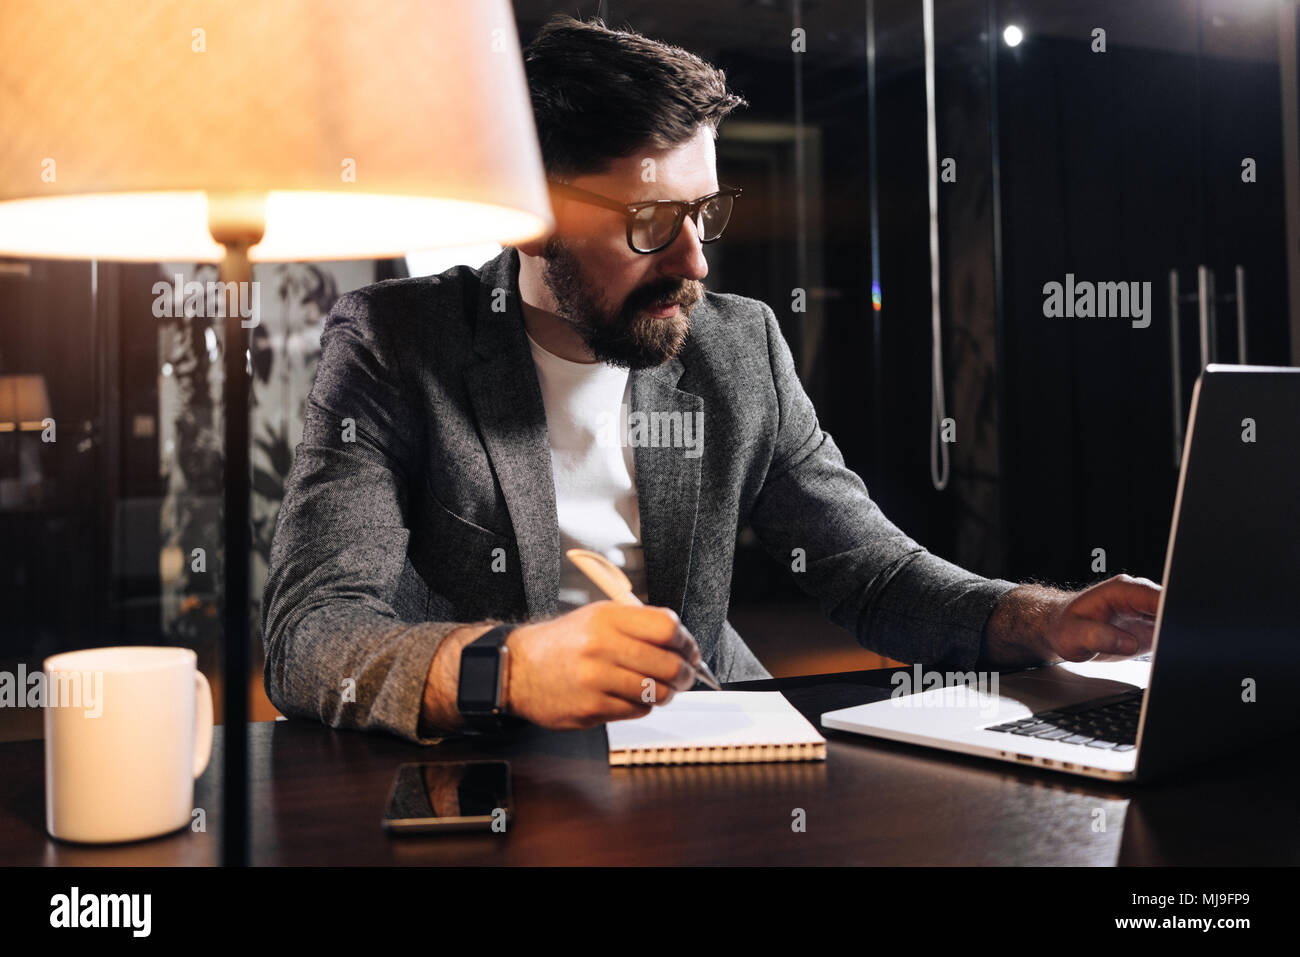 Bearded project manager hold pen in hand and using contemporary notebook. Young businessman working in loft office at night. Man making new startup - Stock Image